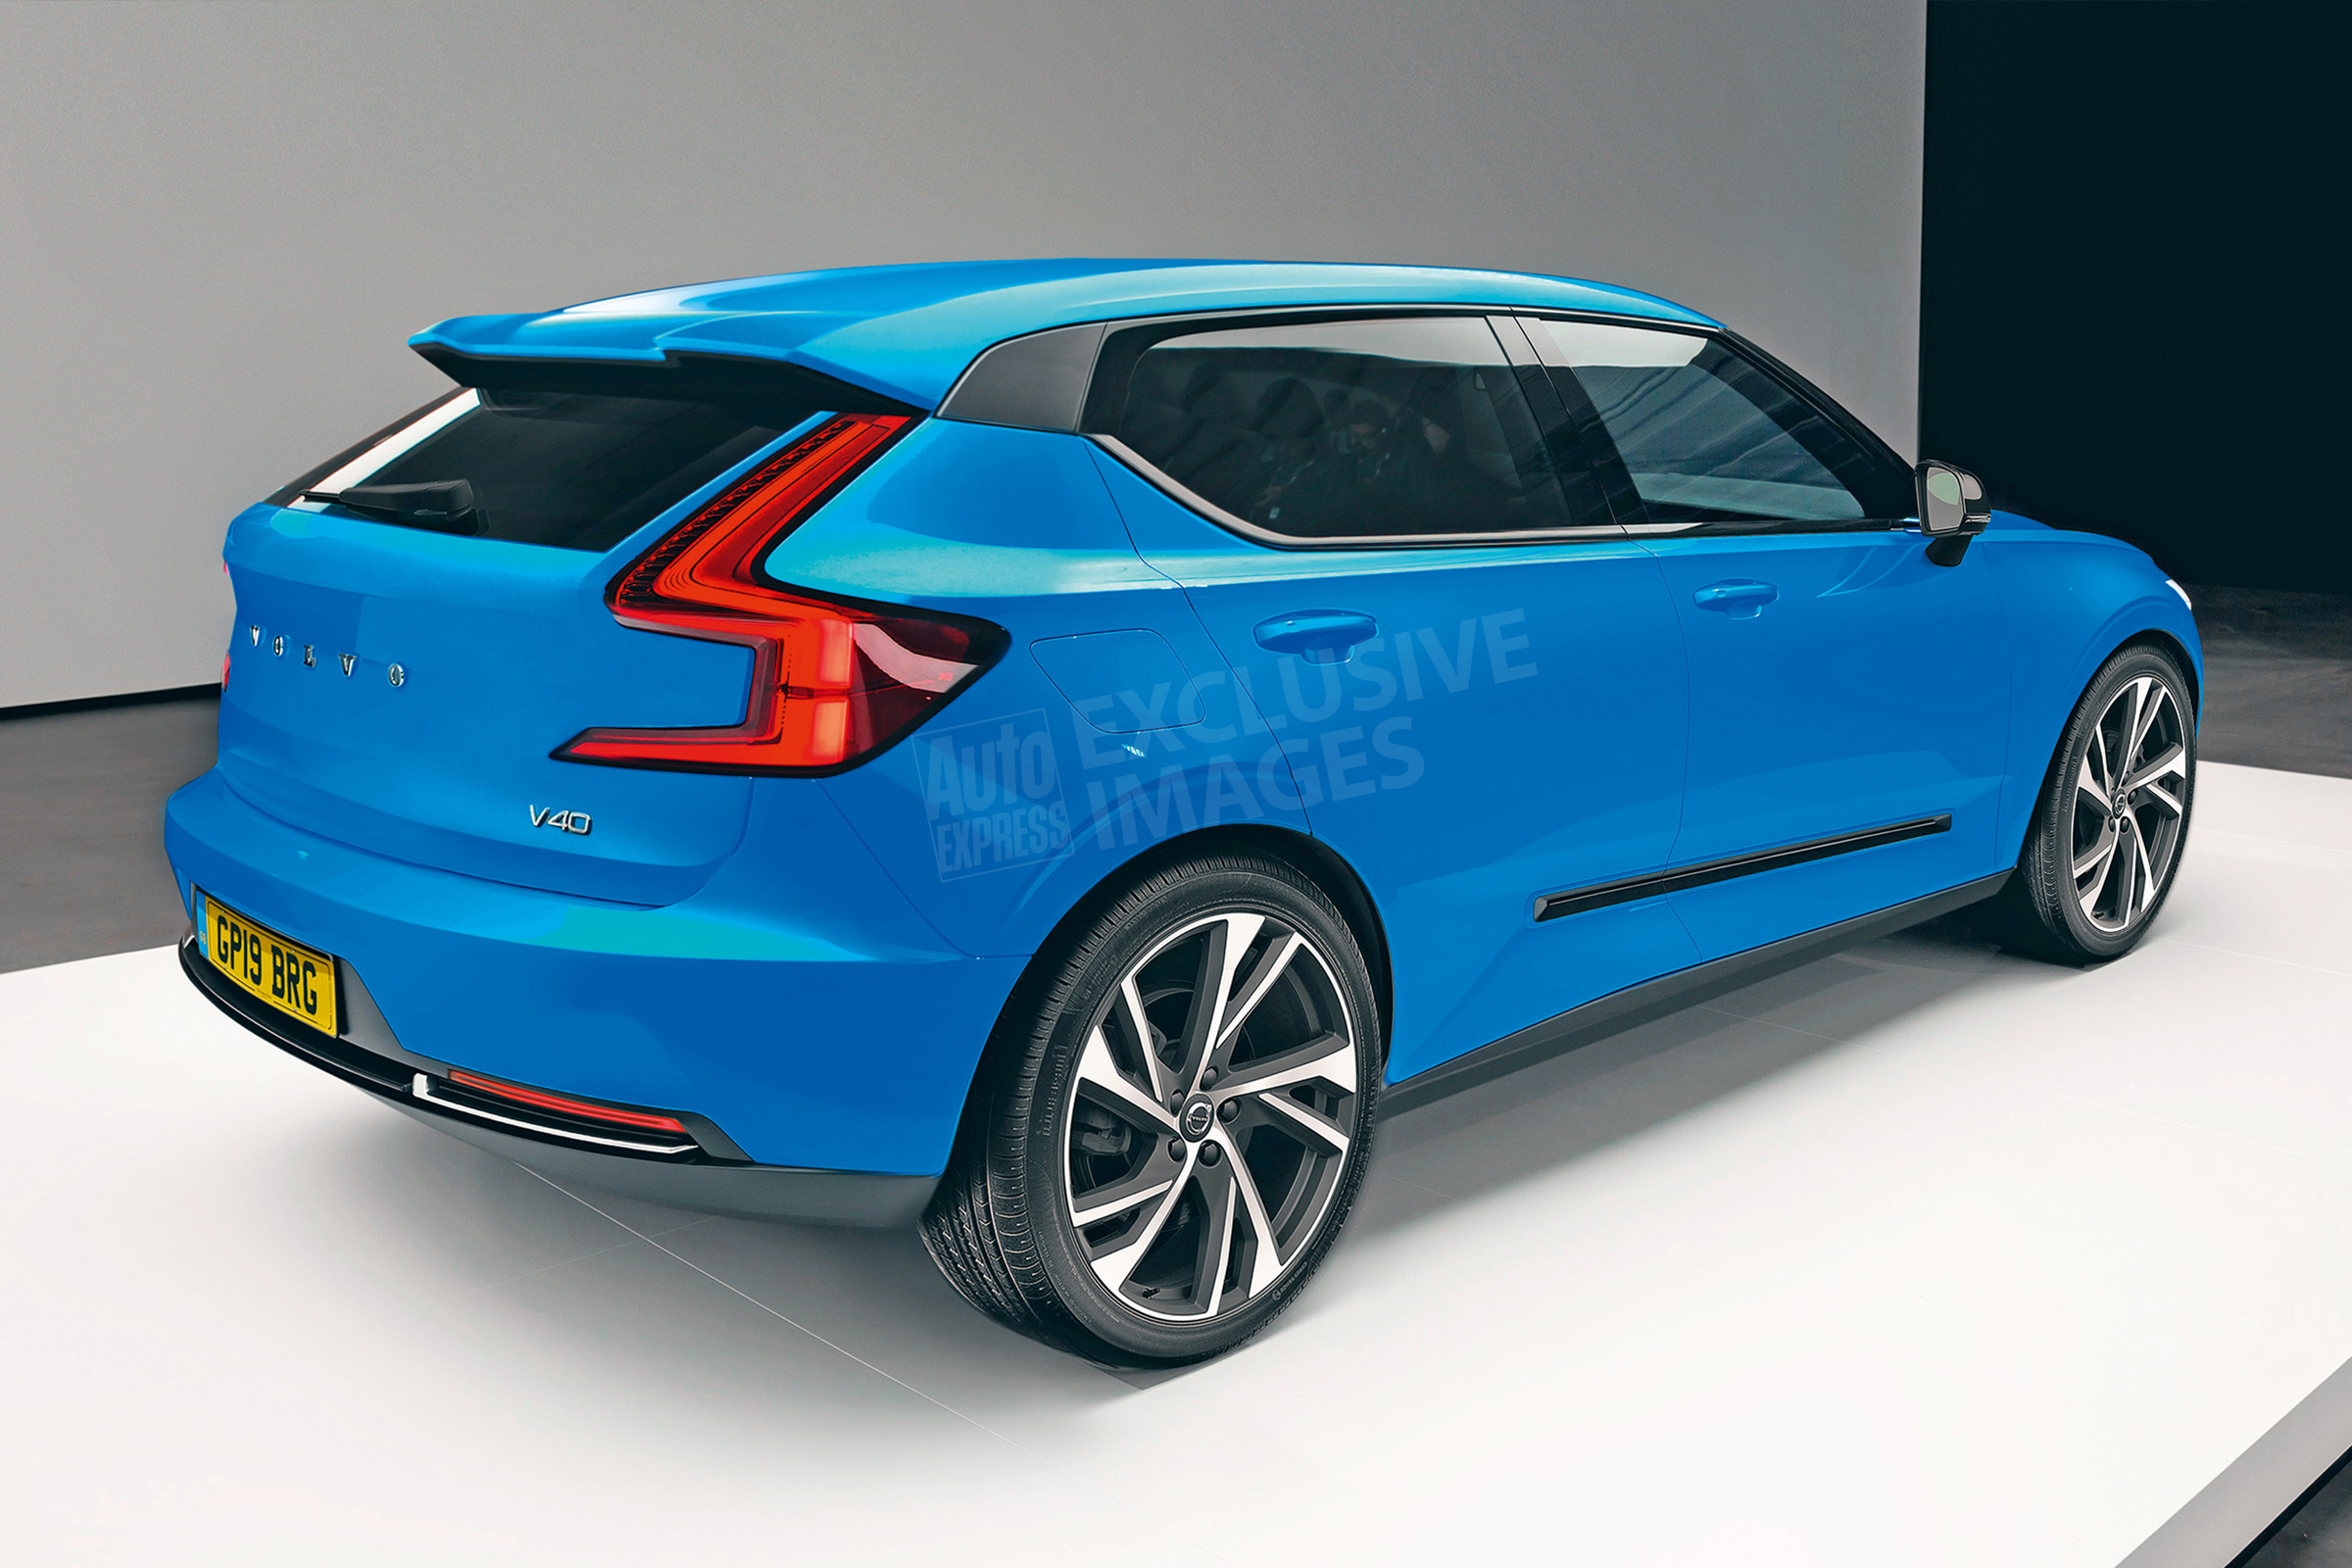 A Sneak Peek At The 2019 Volvo V40 Mvs